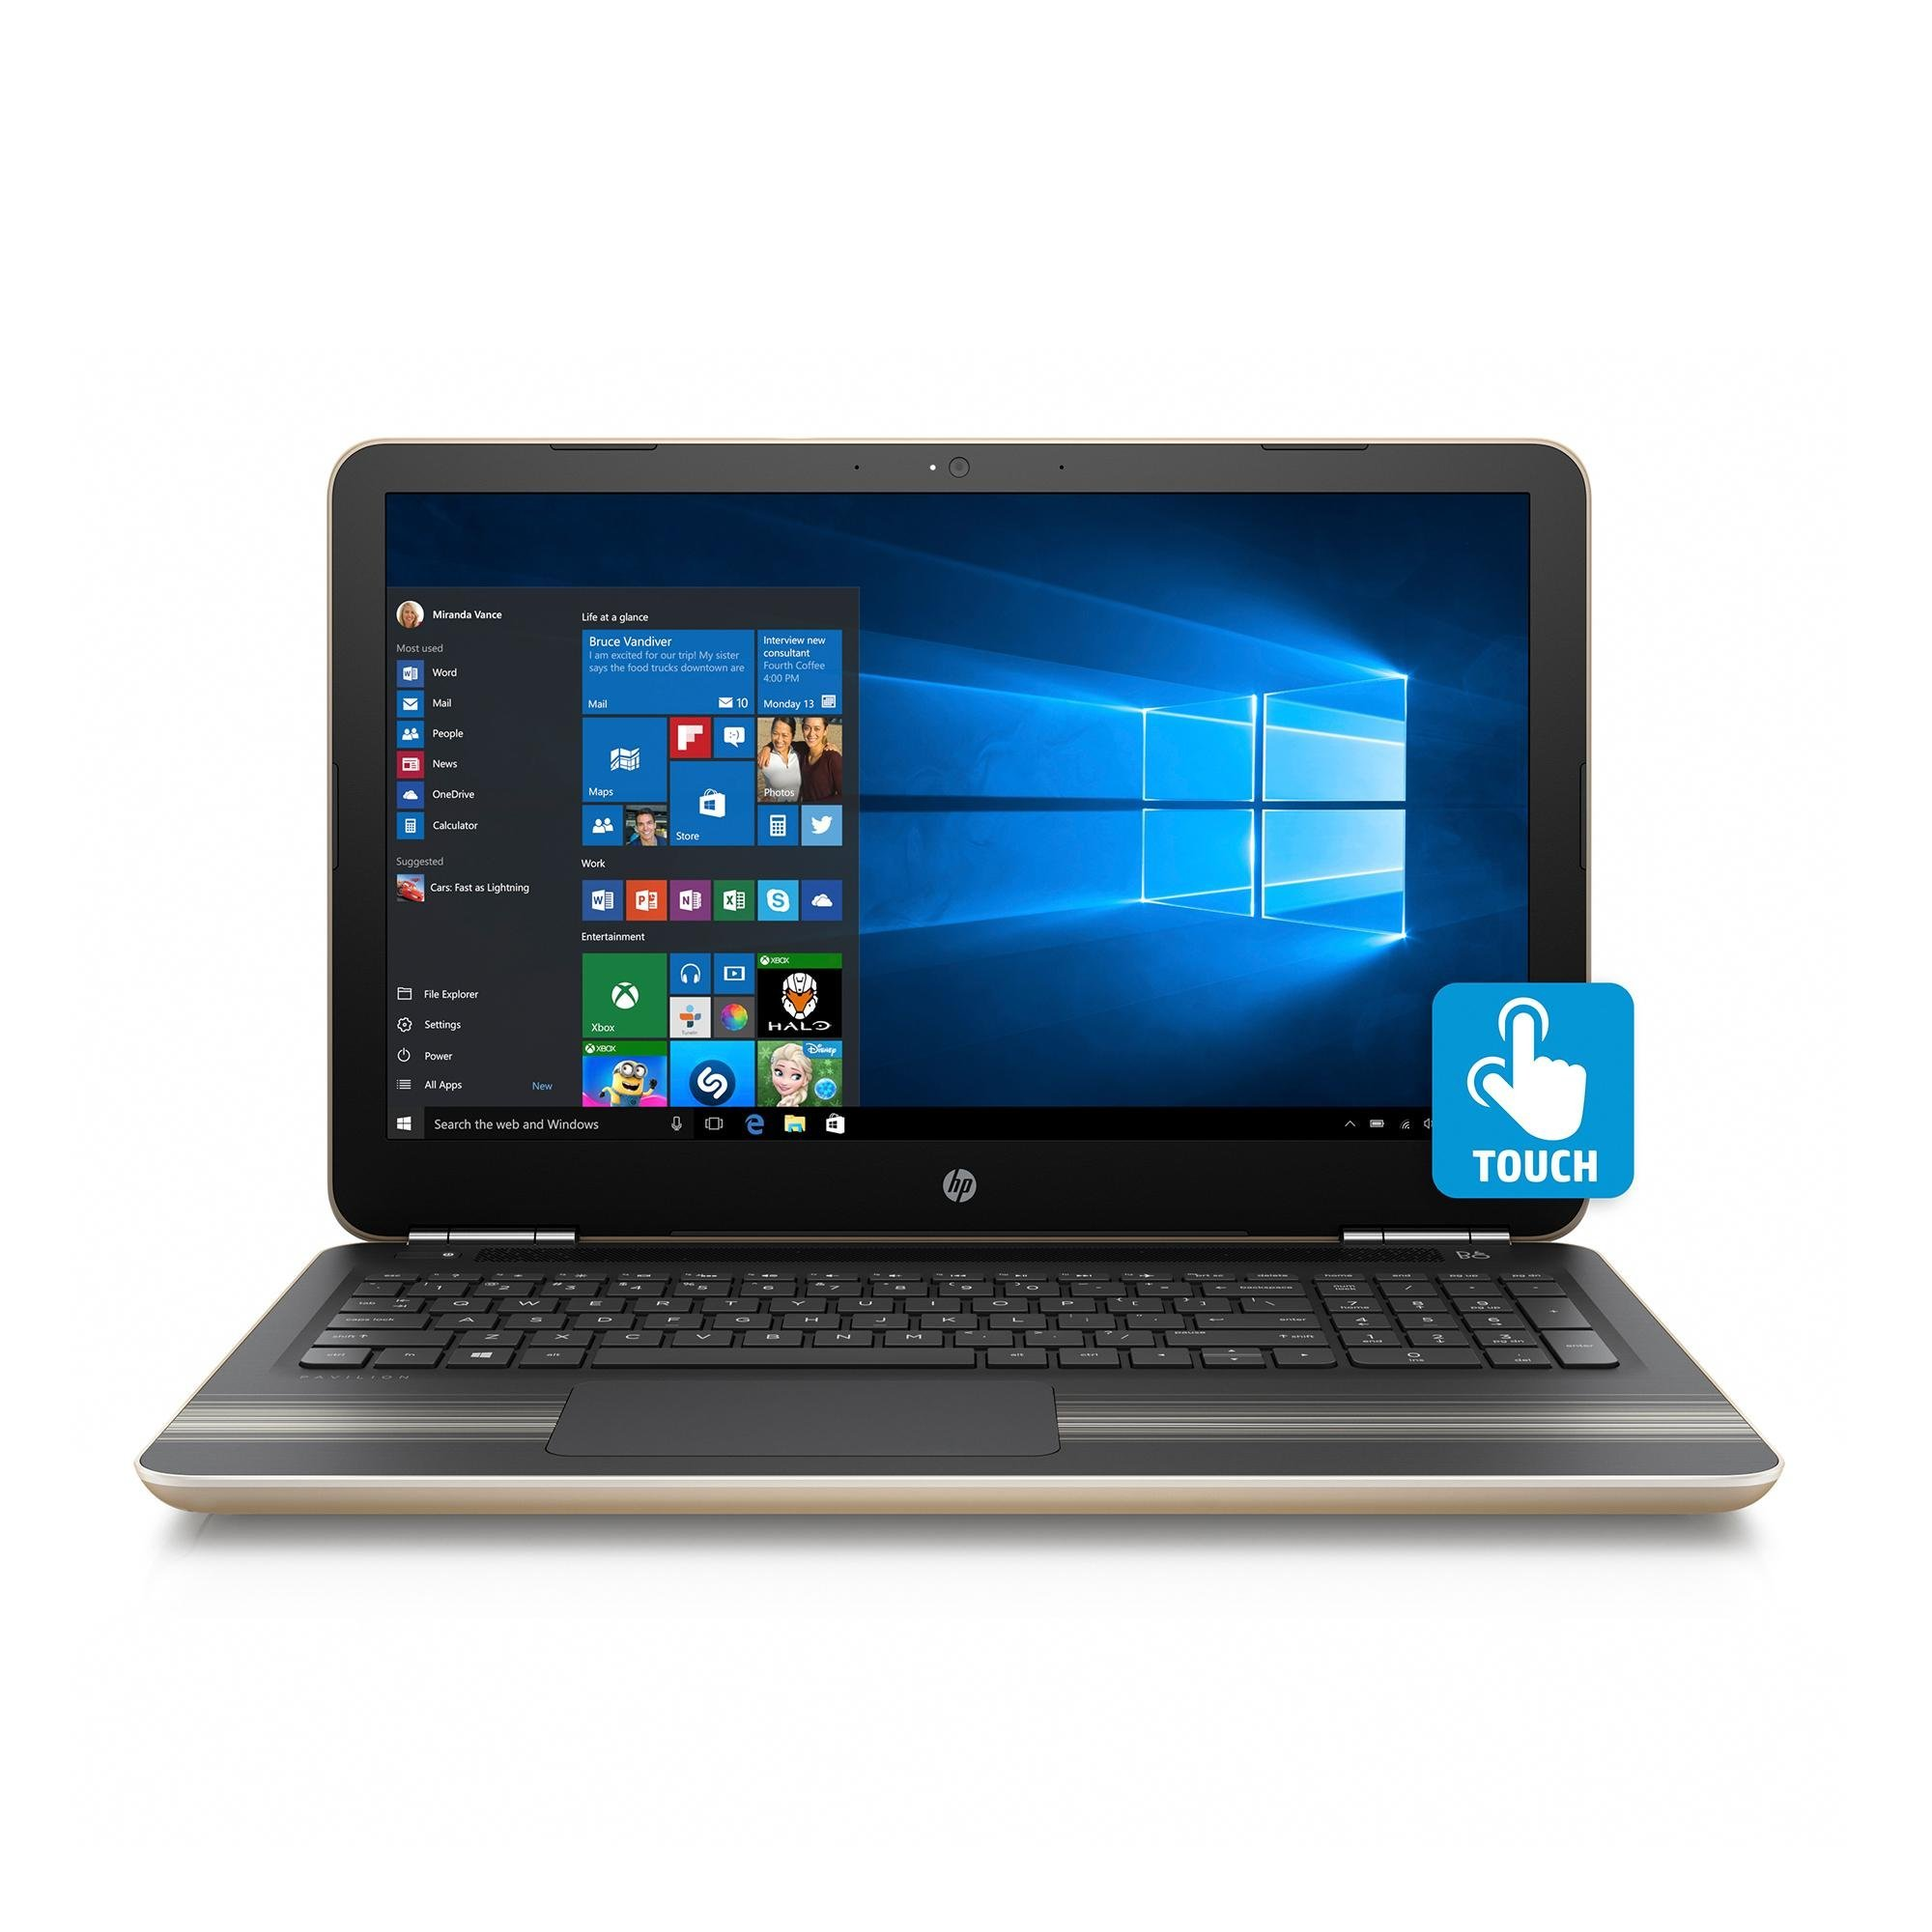 Amazon.com: HP Pavilion 15-au030nr 15.6-Inch Laptop (Core